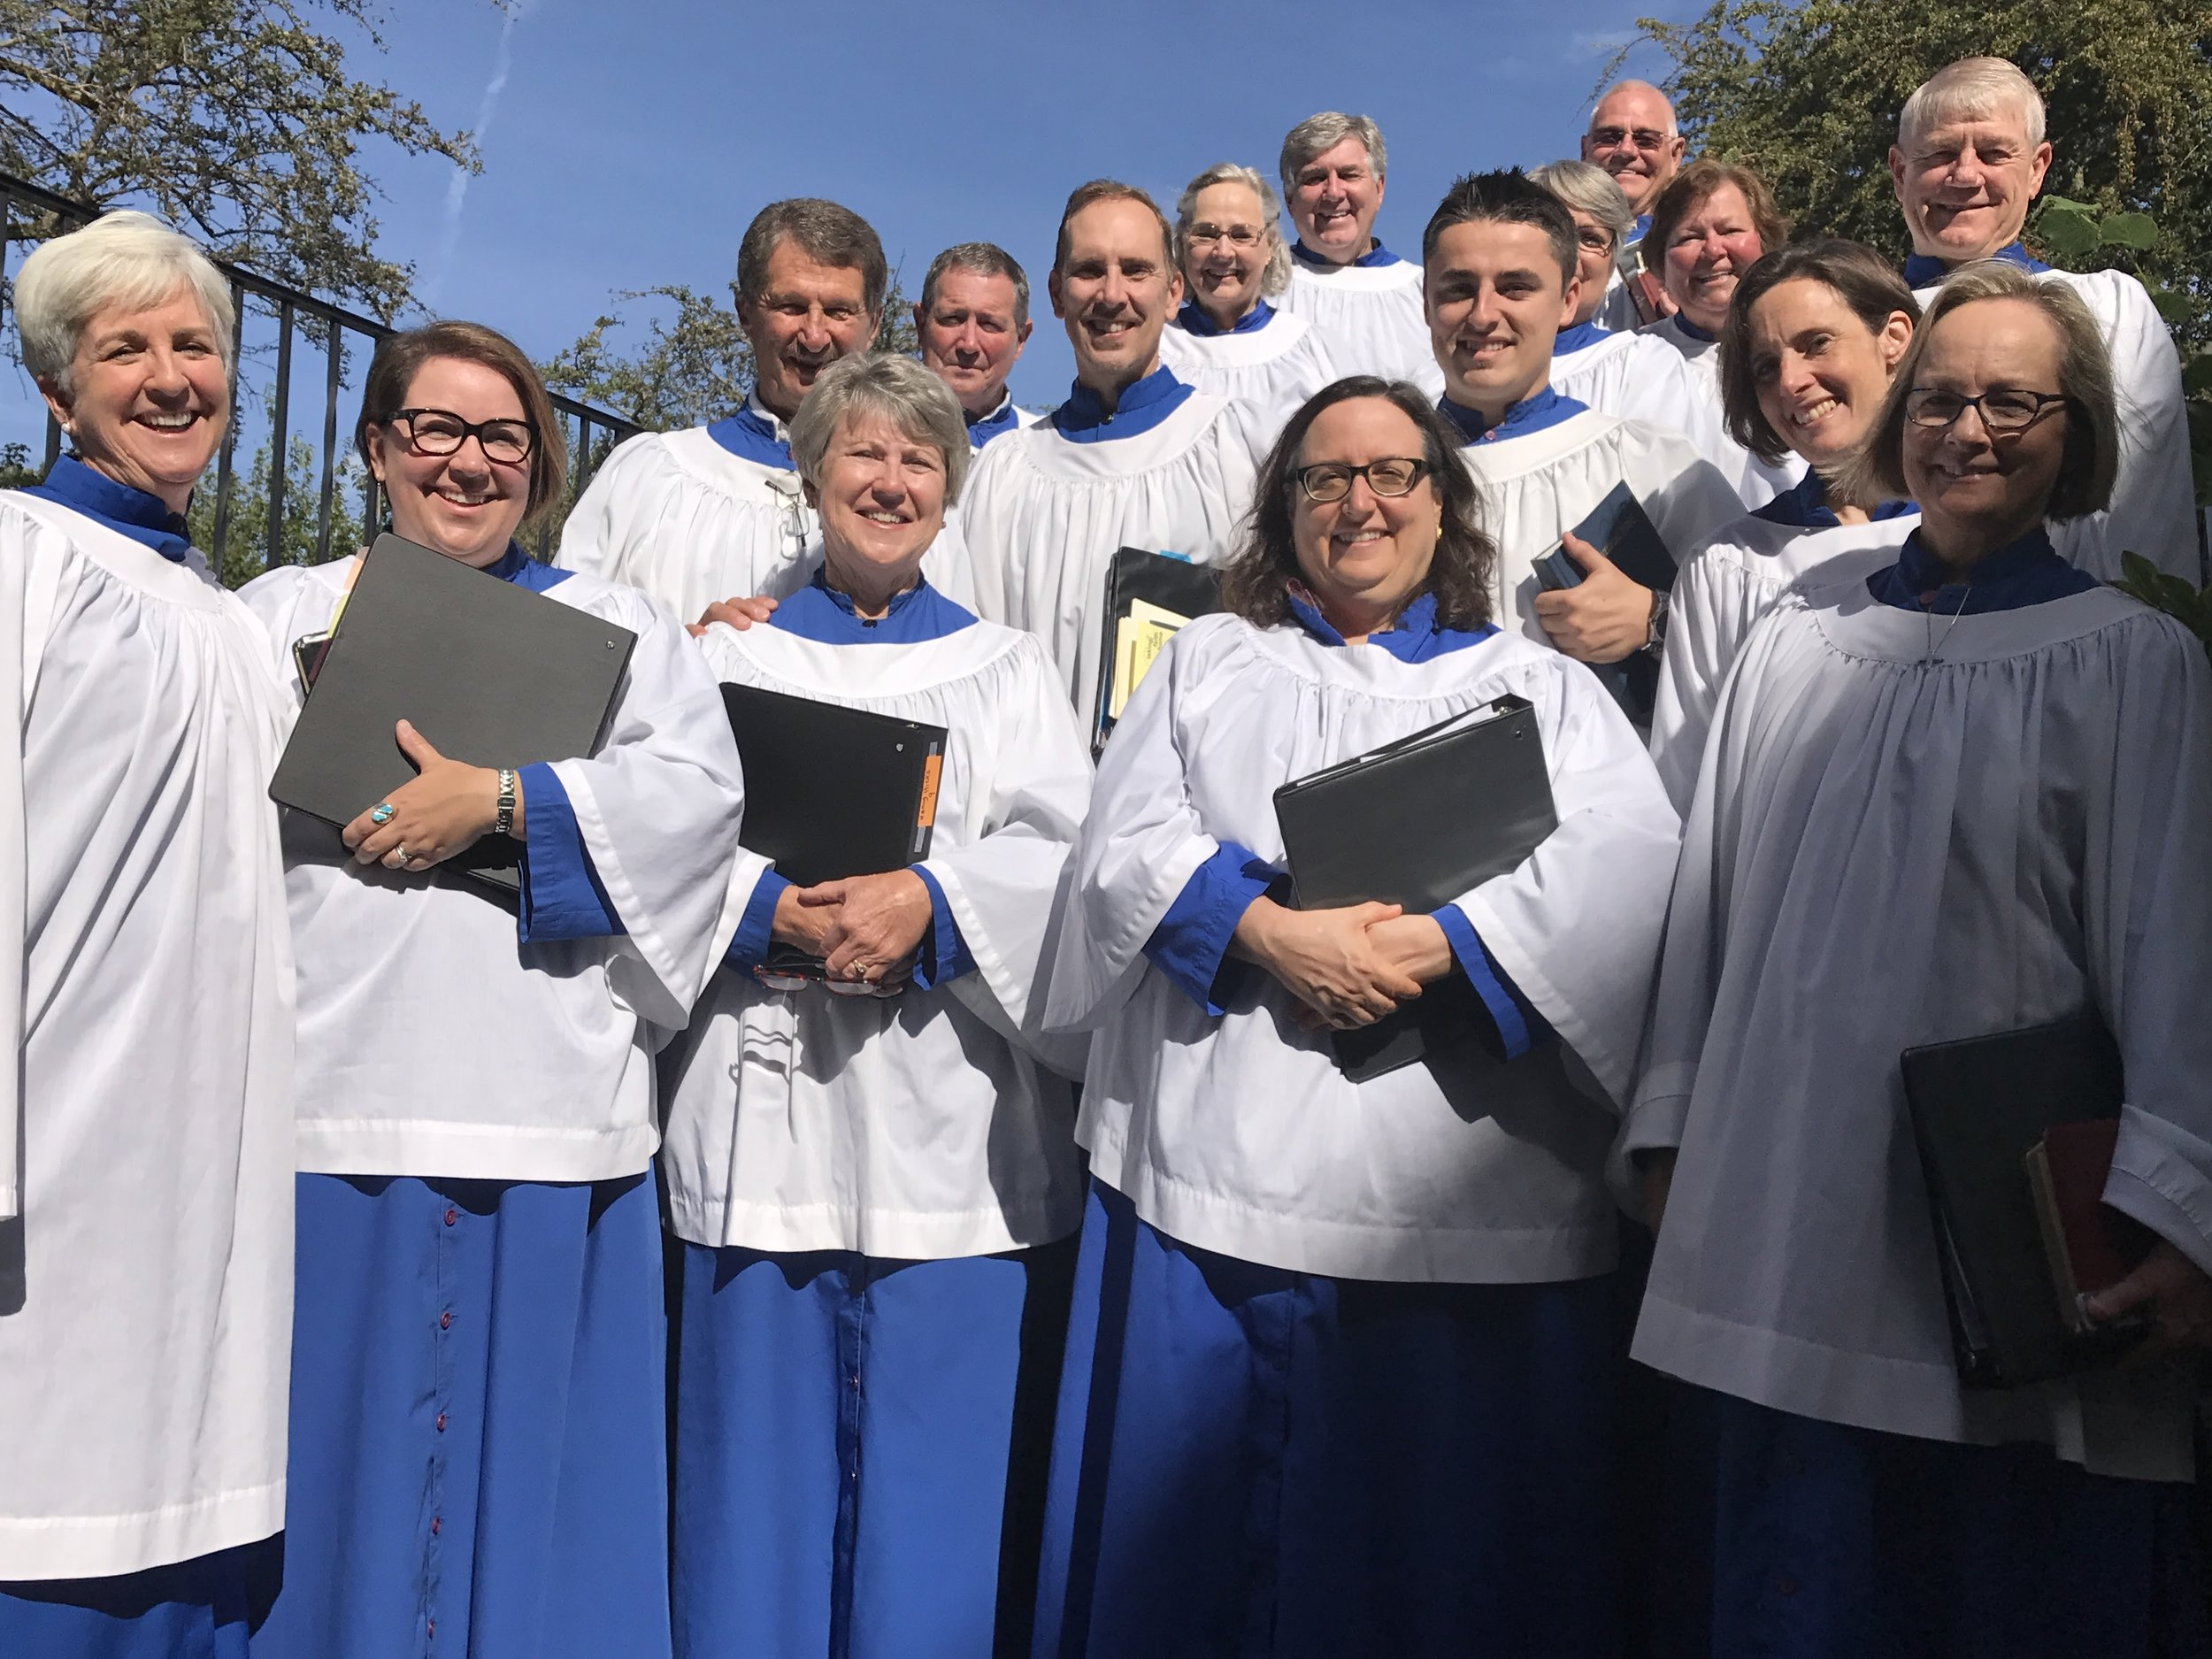 Chancel Choir - Ages high school and upEnjoy rehearsing and performing psalms, anthems, and hymns.No experience necessary.Rehearsals: Wed. 7-8:30 p.m.